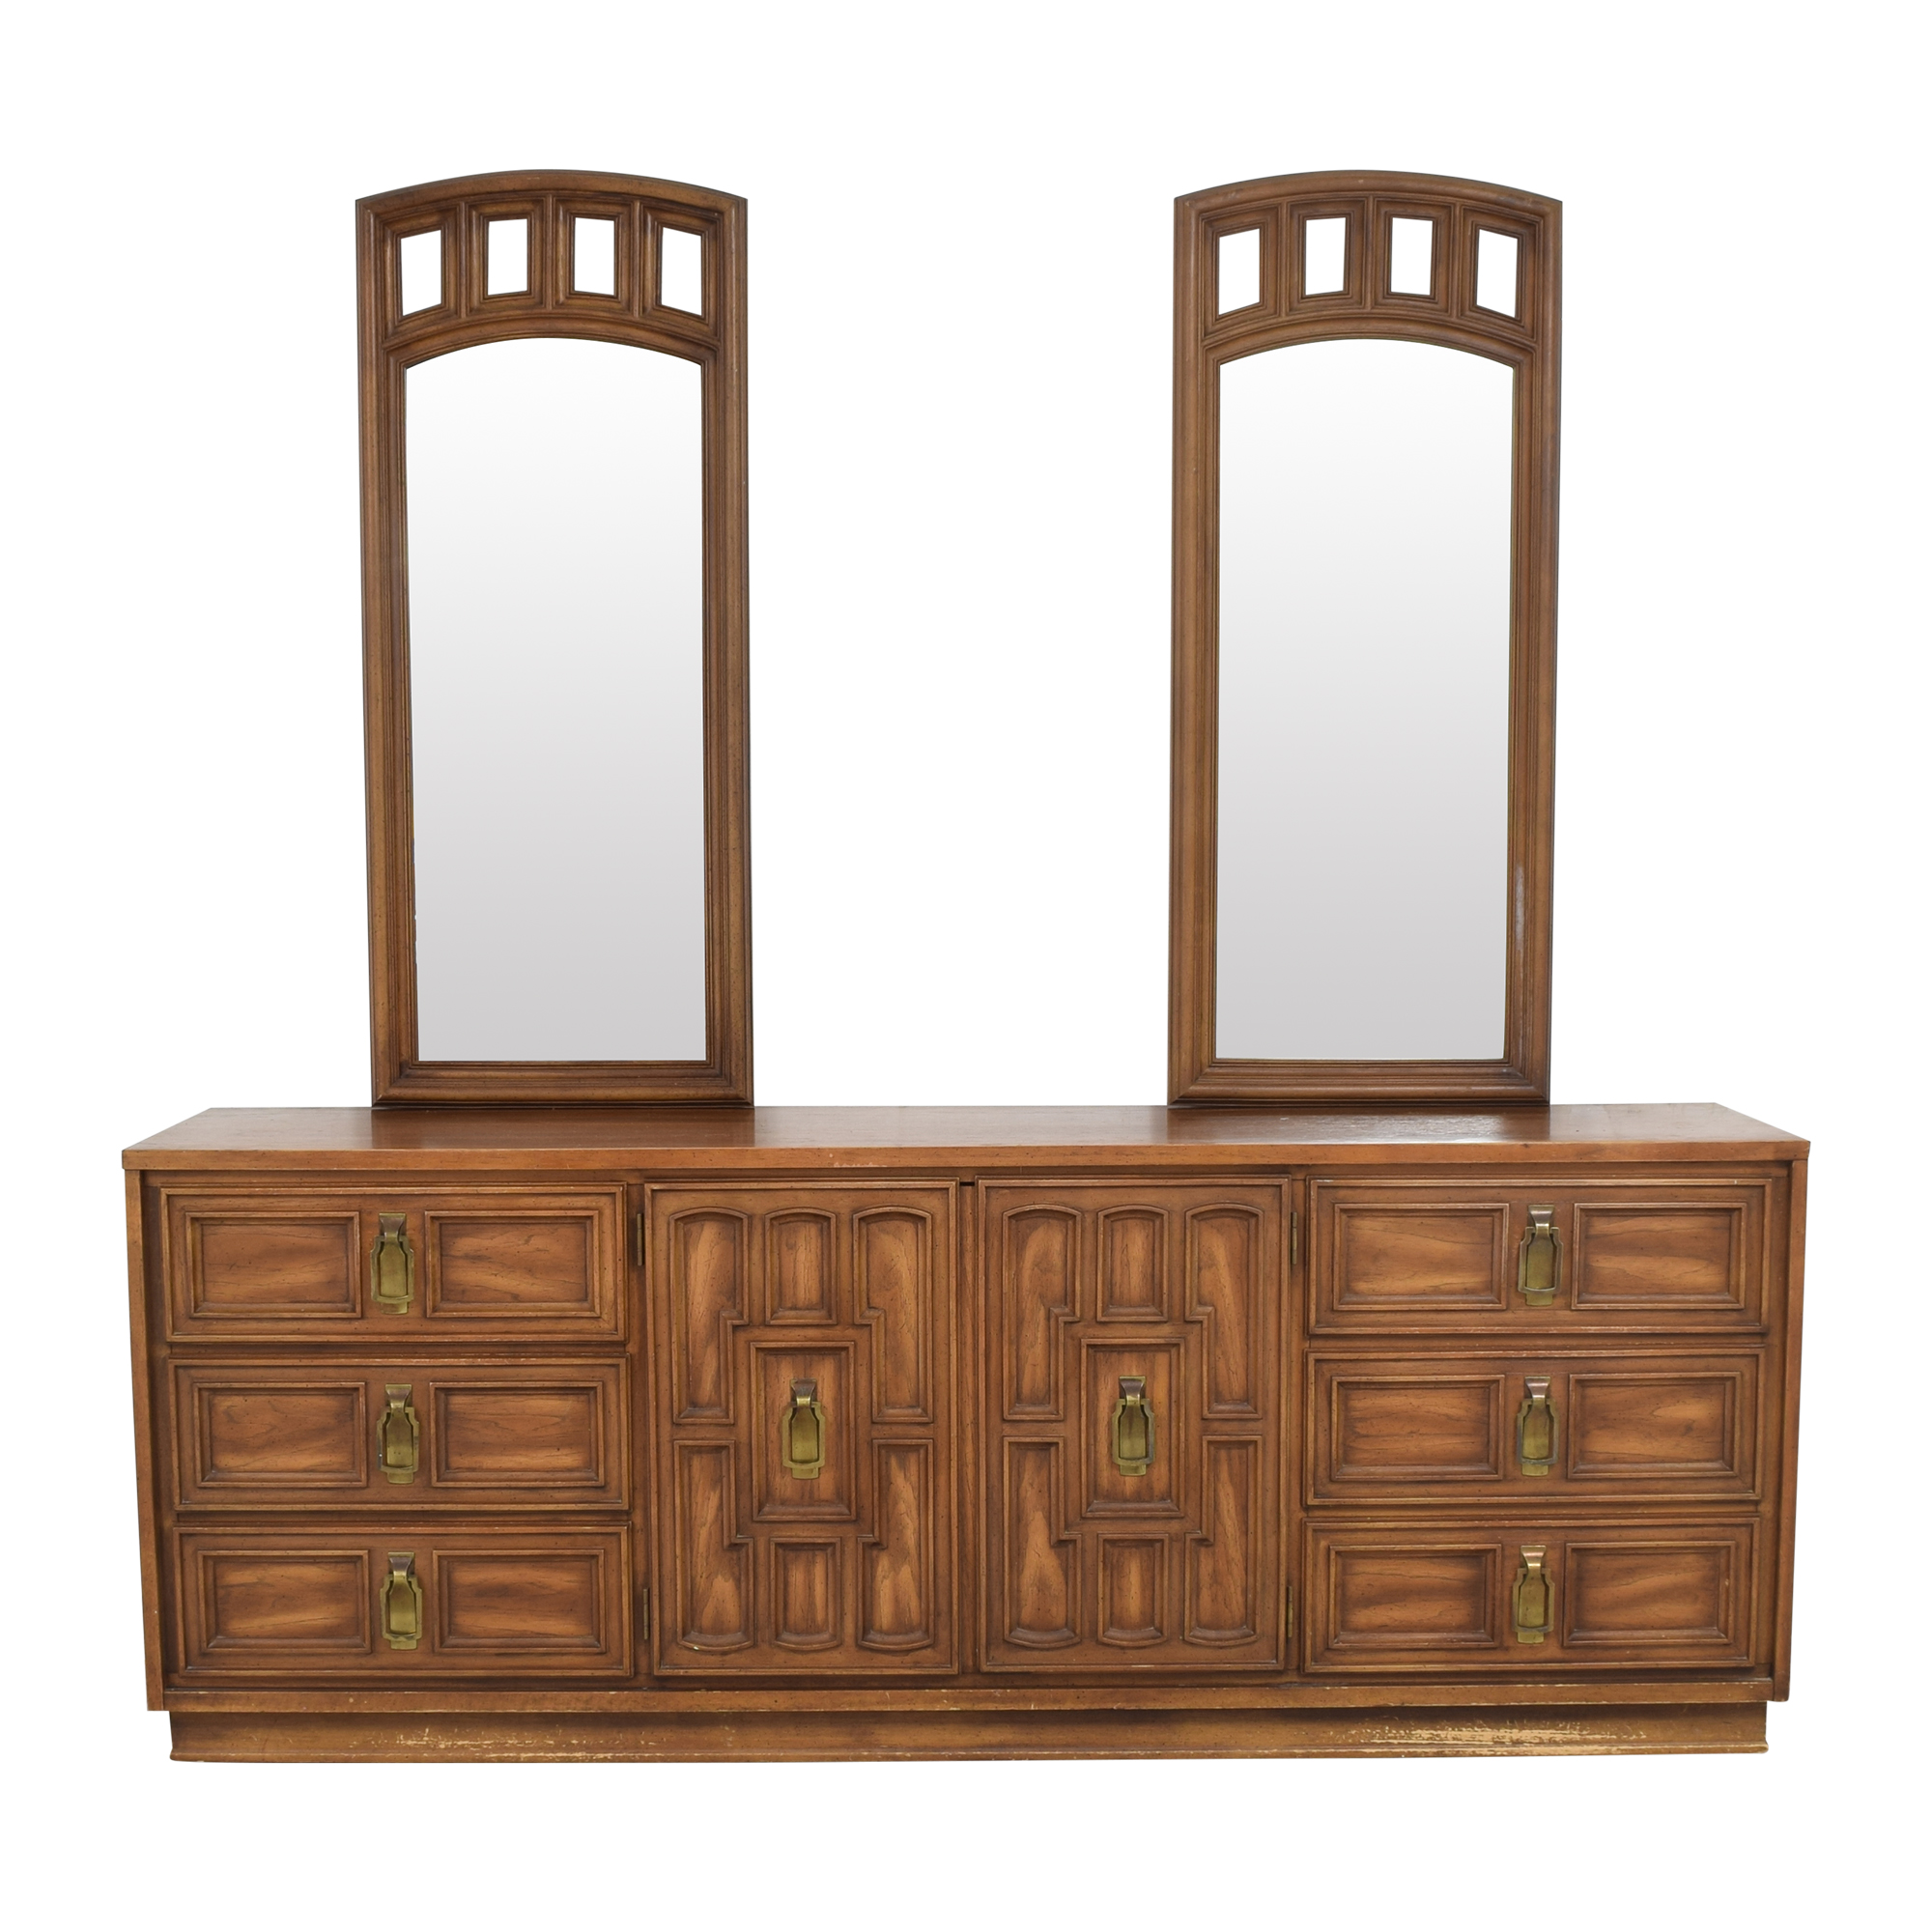 Stanley Furniture Triple Dresser with Mirrors / Dressers